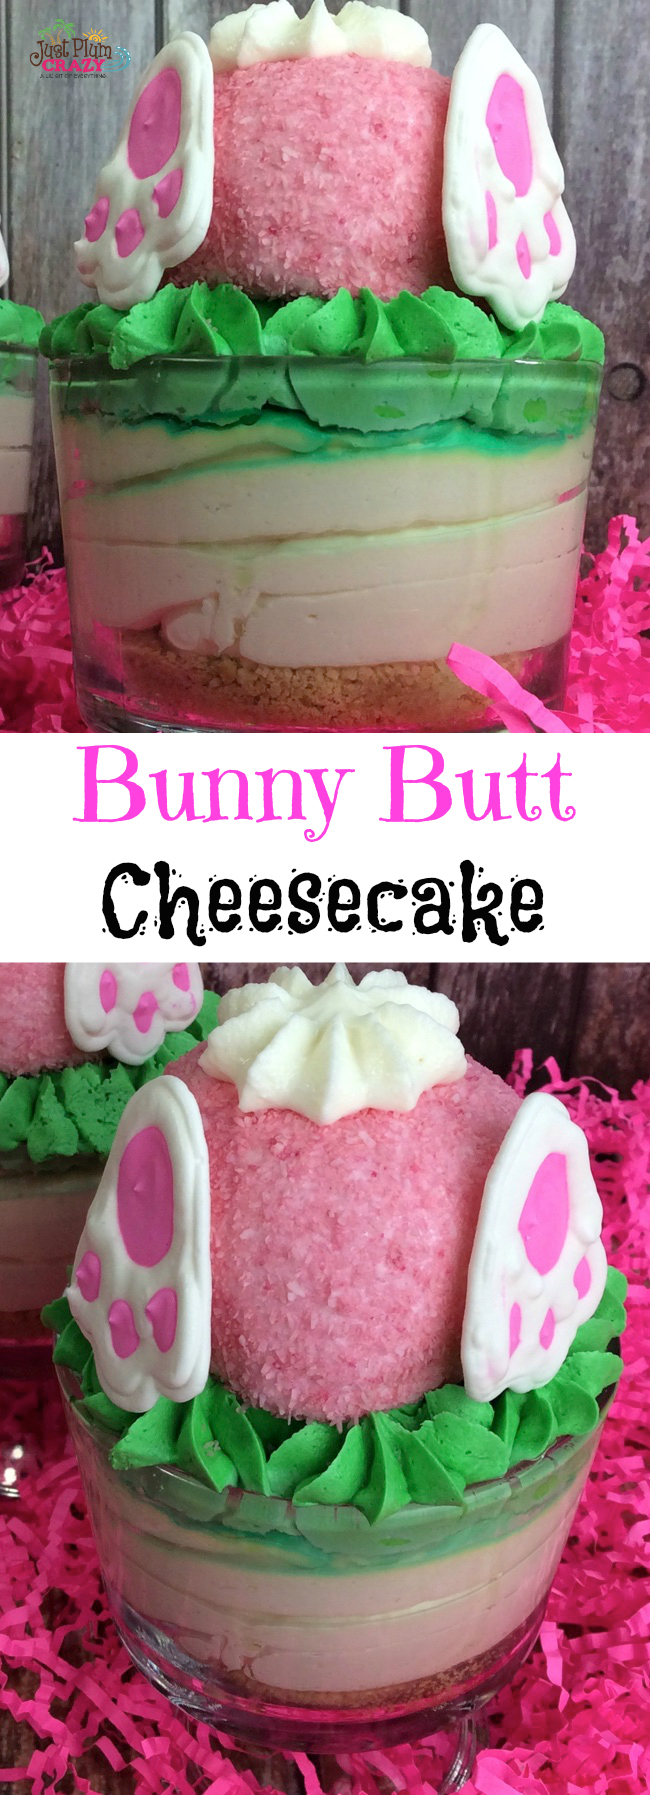 Today we are sharing an Easter Bunny Butt Cheesecake recipe. Simple to make and a great dessert too. Because who doesn't love cheesecake?